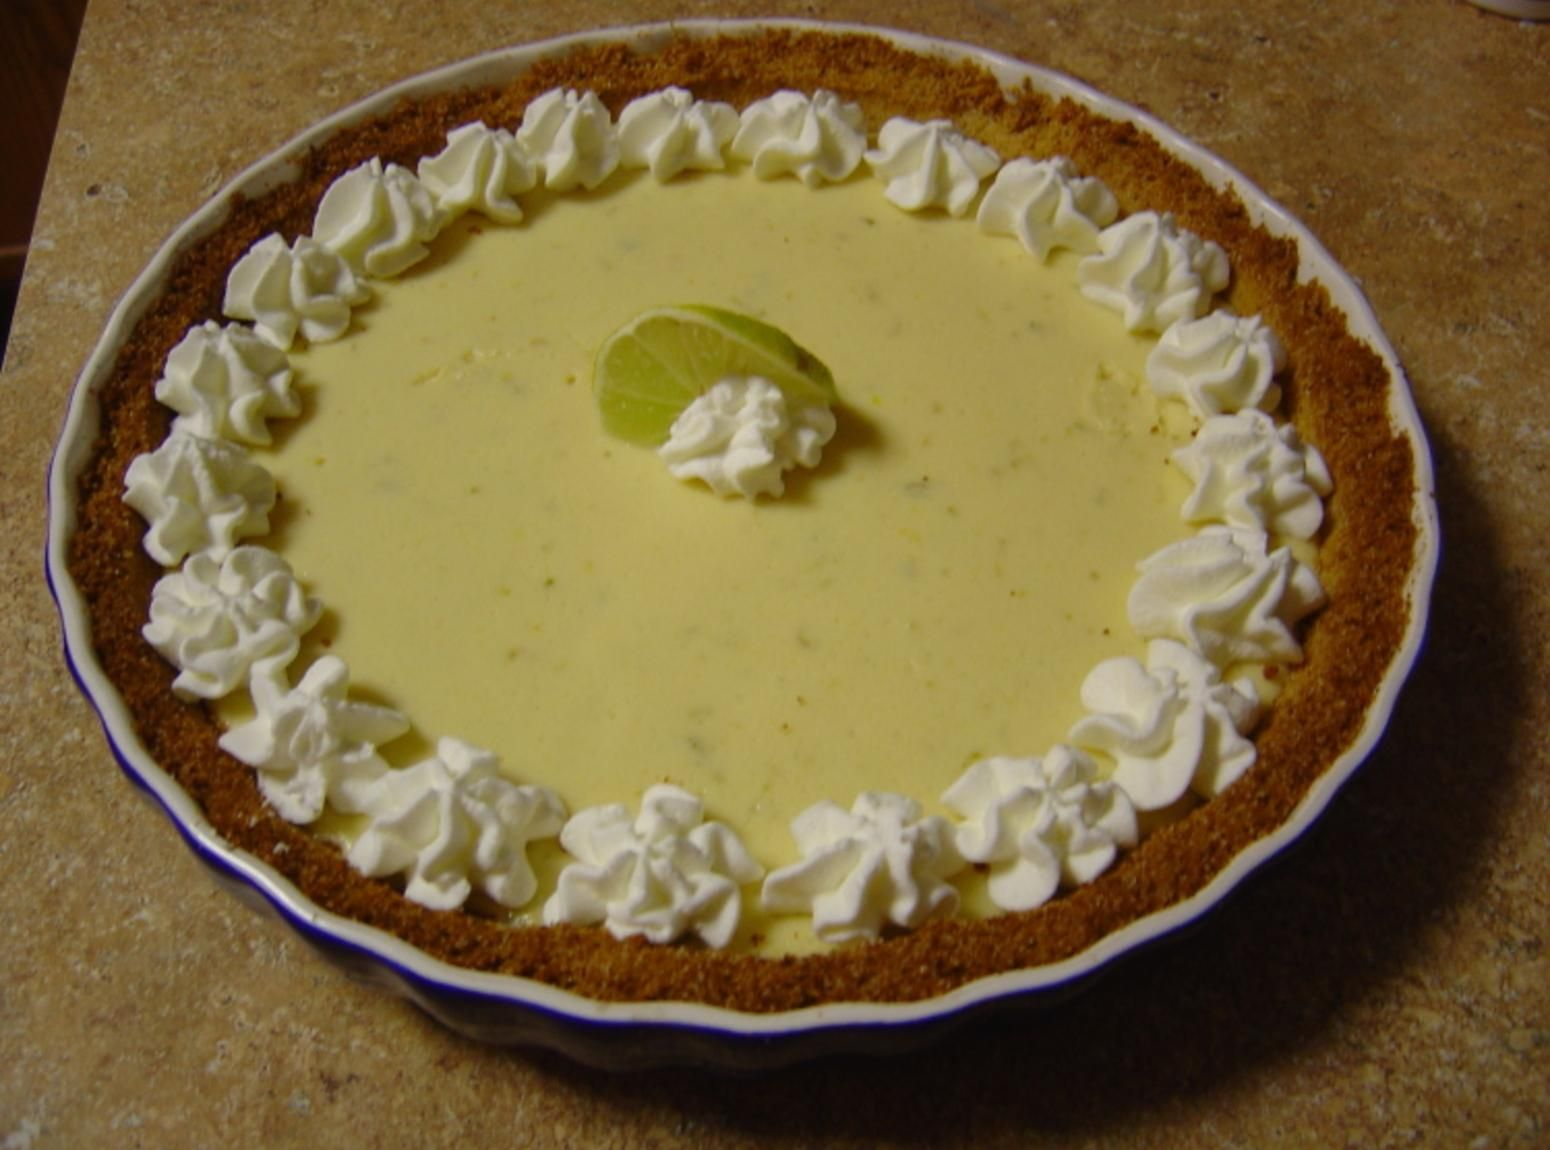 The Boss's Key Lime Pie